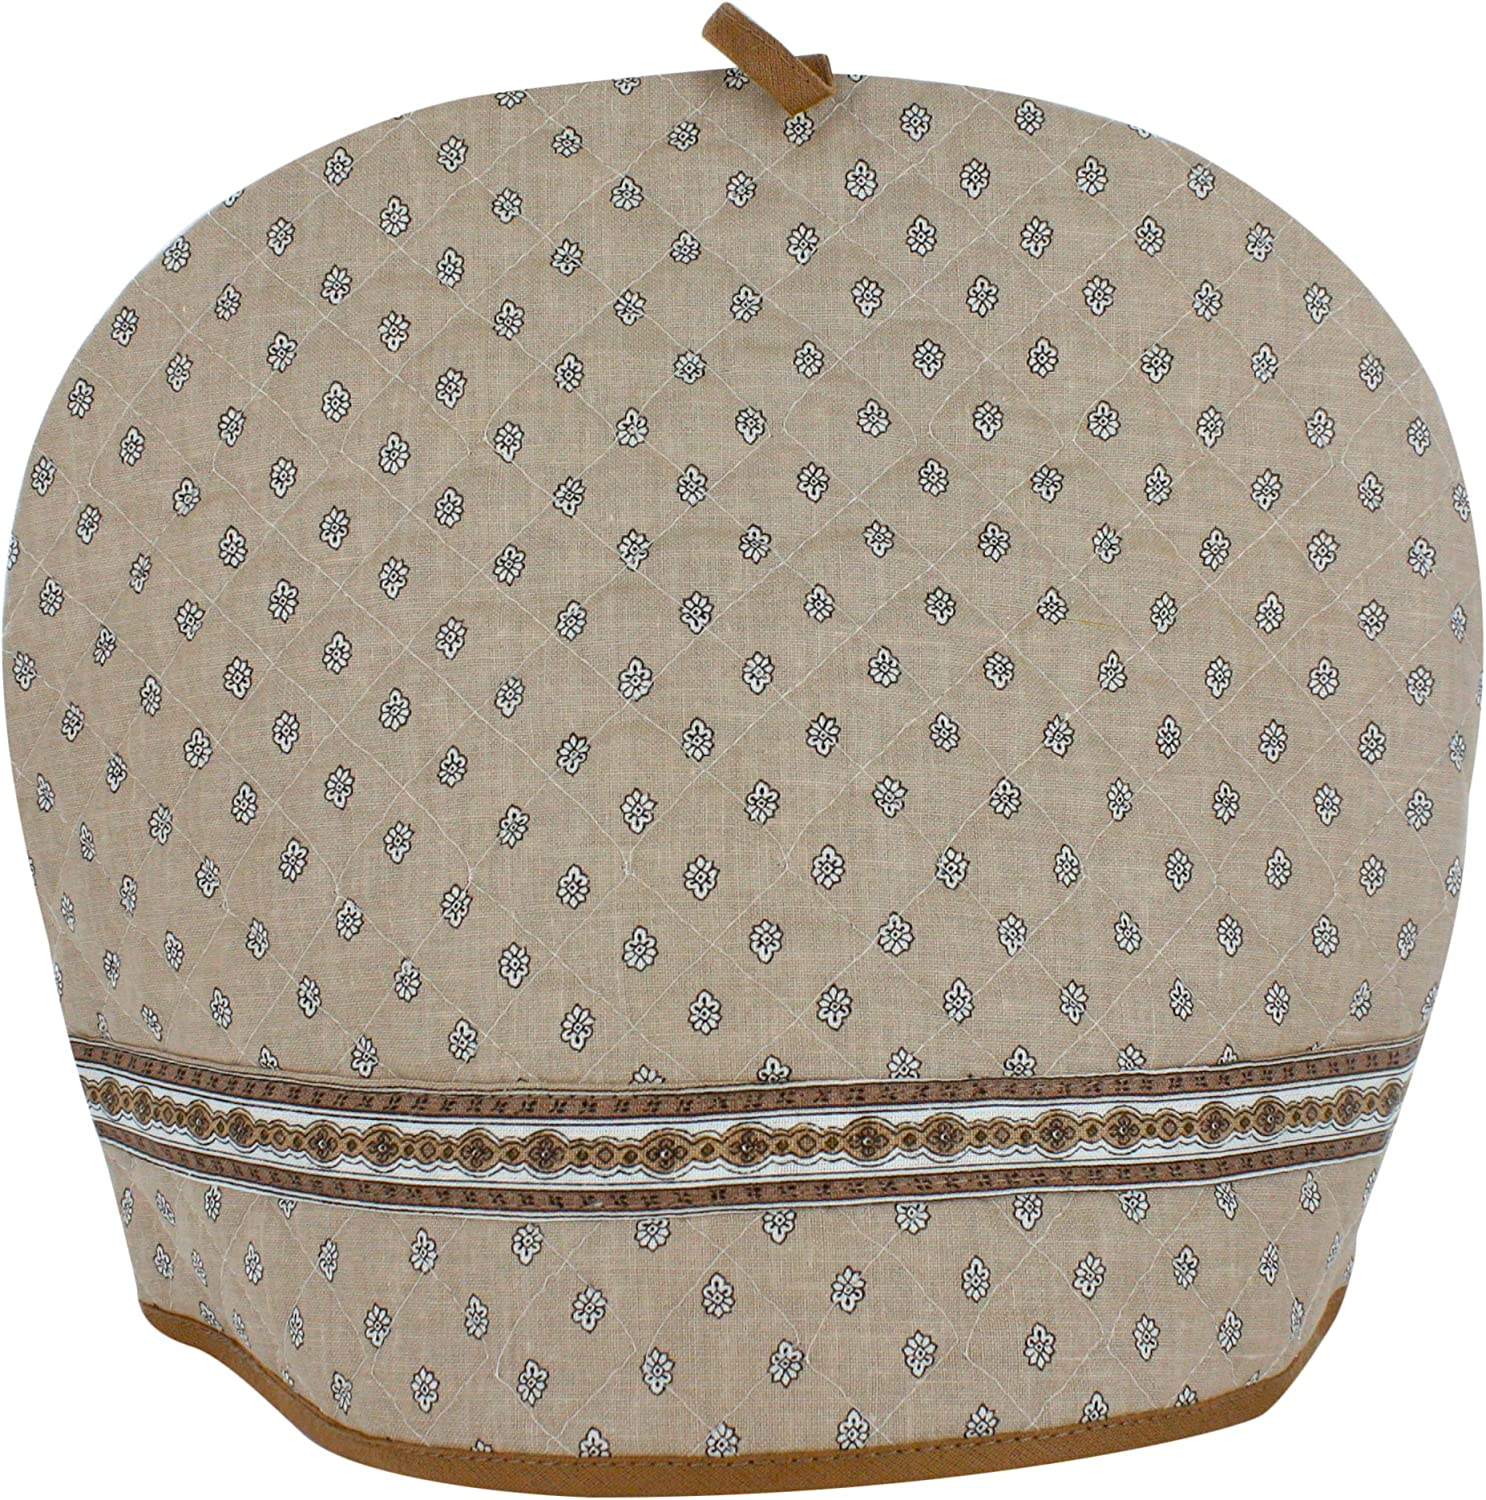 Denver Mall Provence Ranking TOP9 Tea Cozy - Beige 12 1 Made X France 9 2